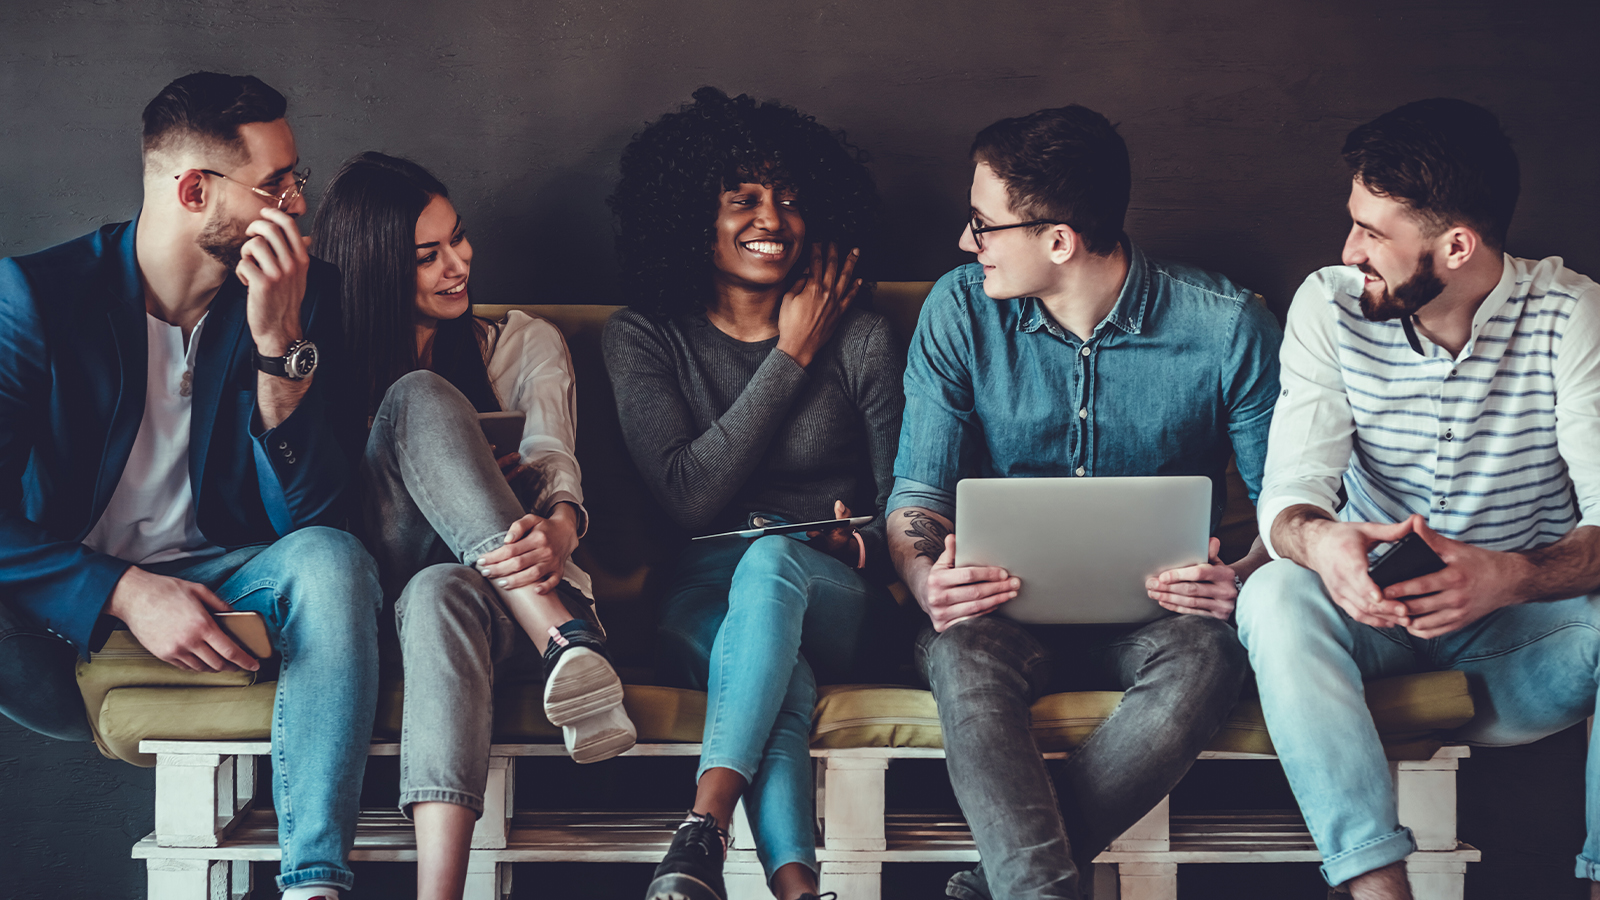 Combining Employee Experience and Customer Experience